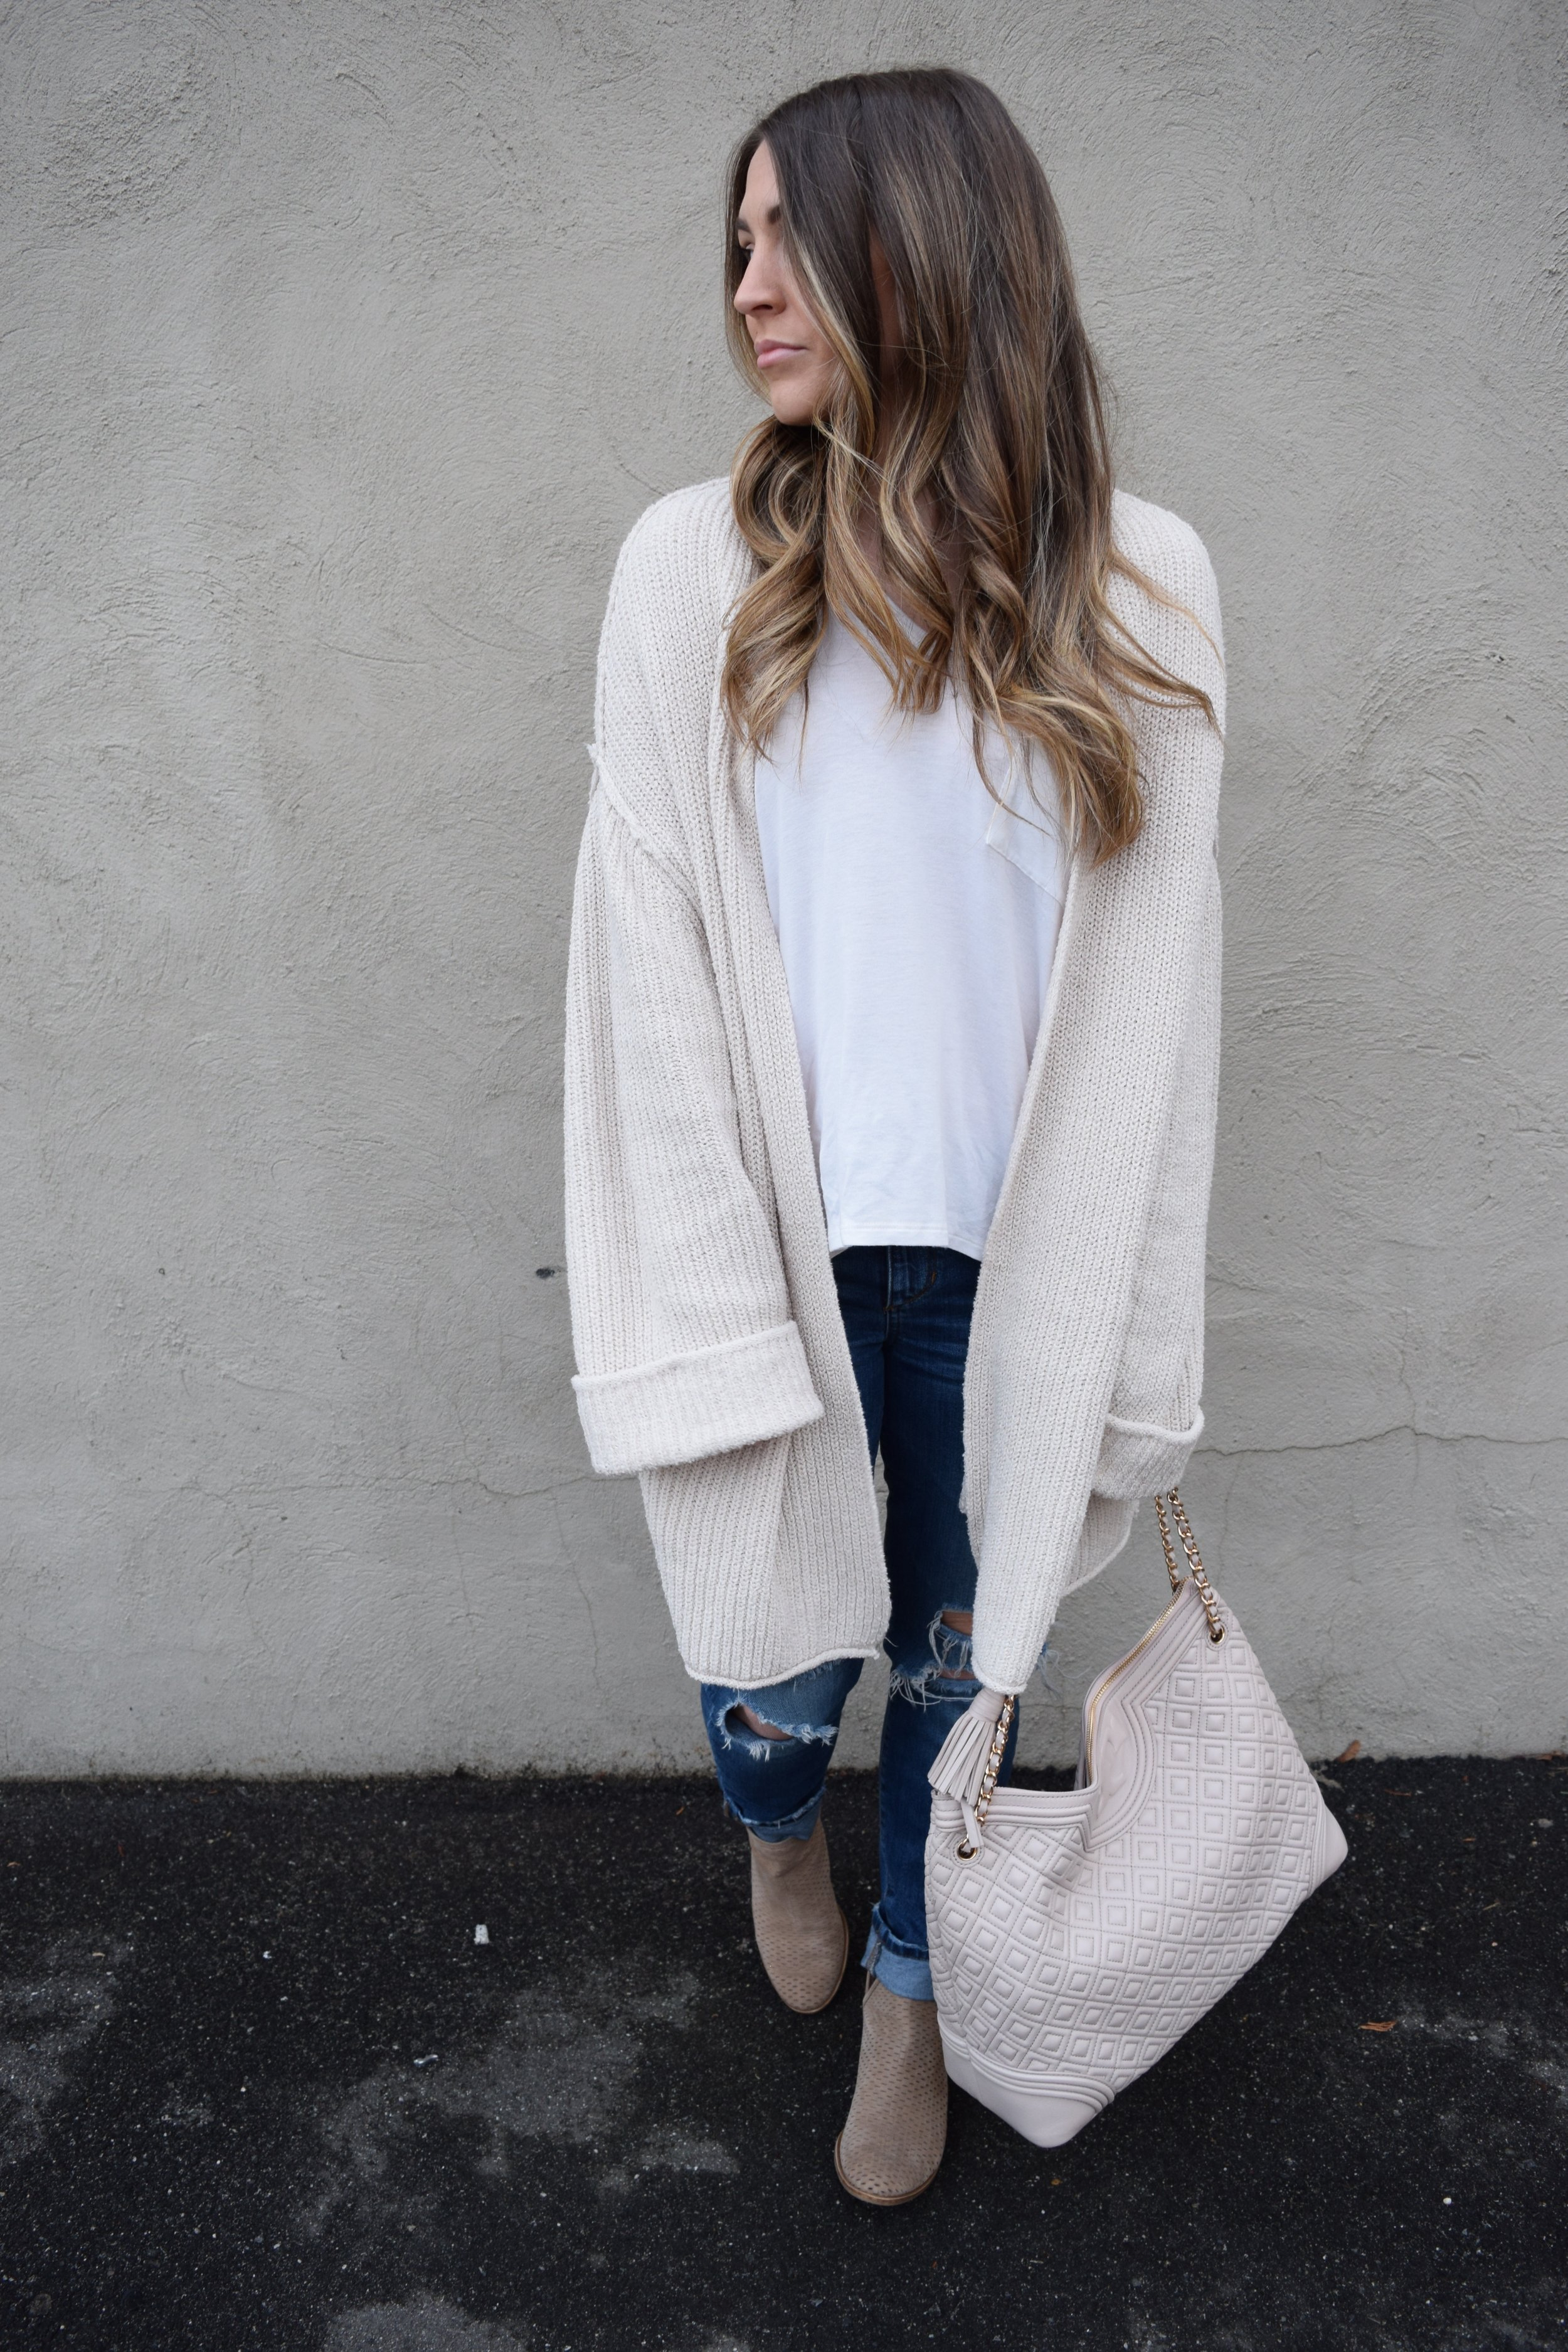 winter fashion, outfit idea, cozy layers